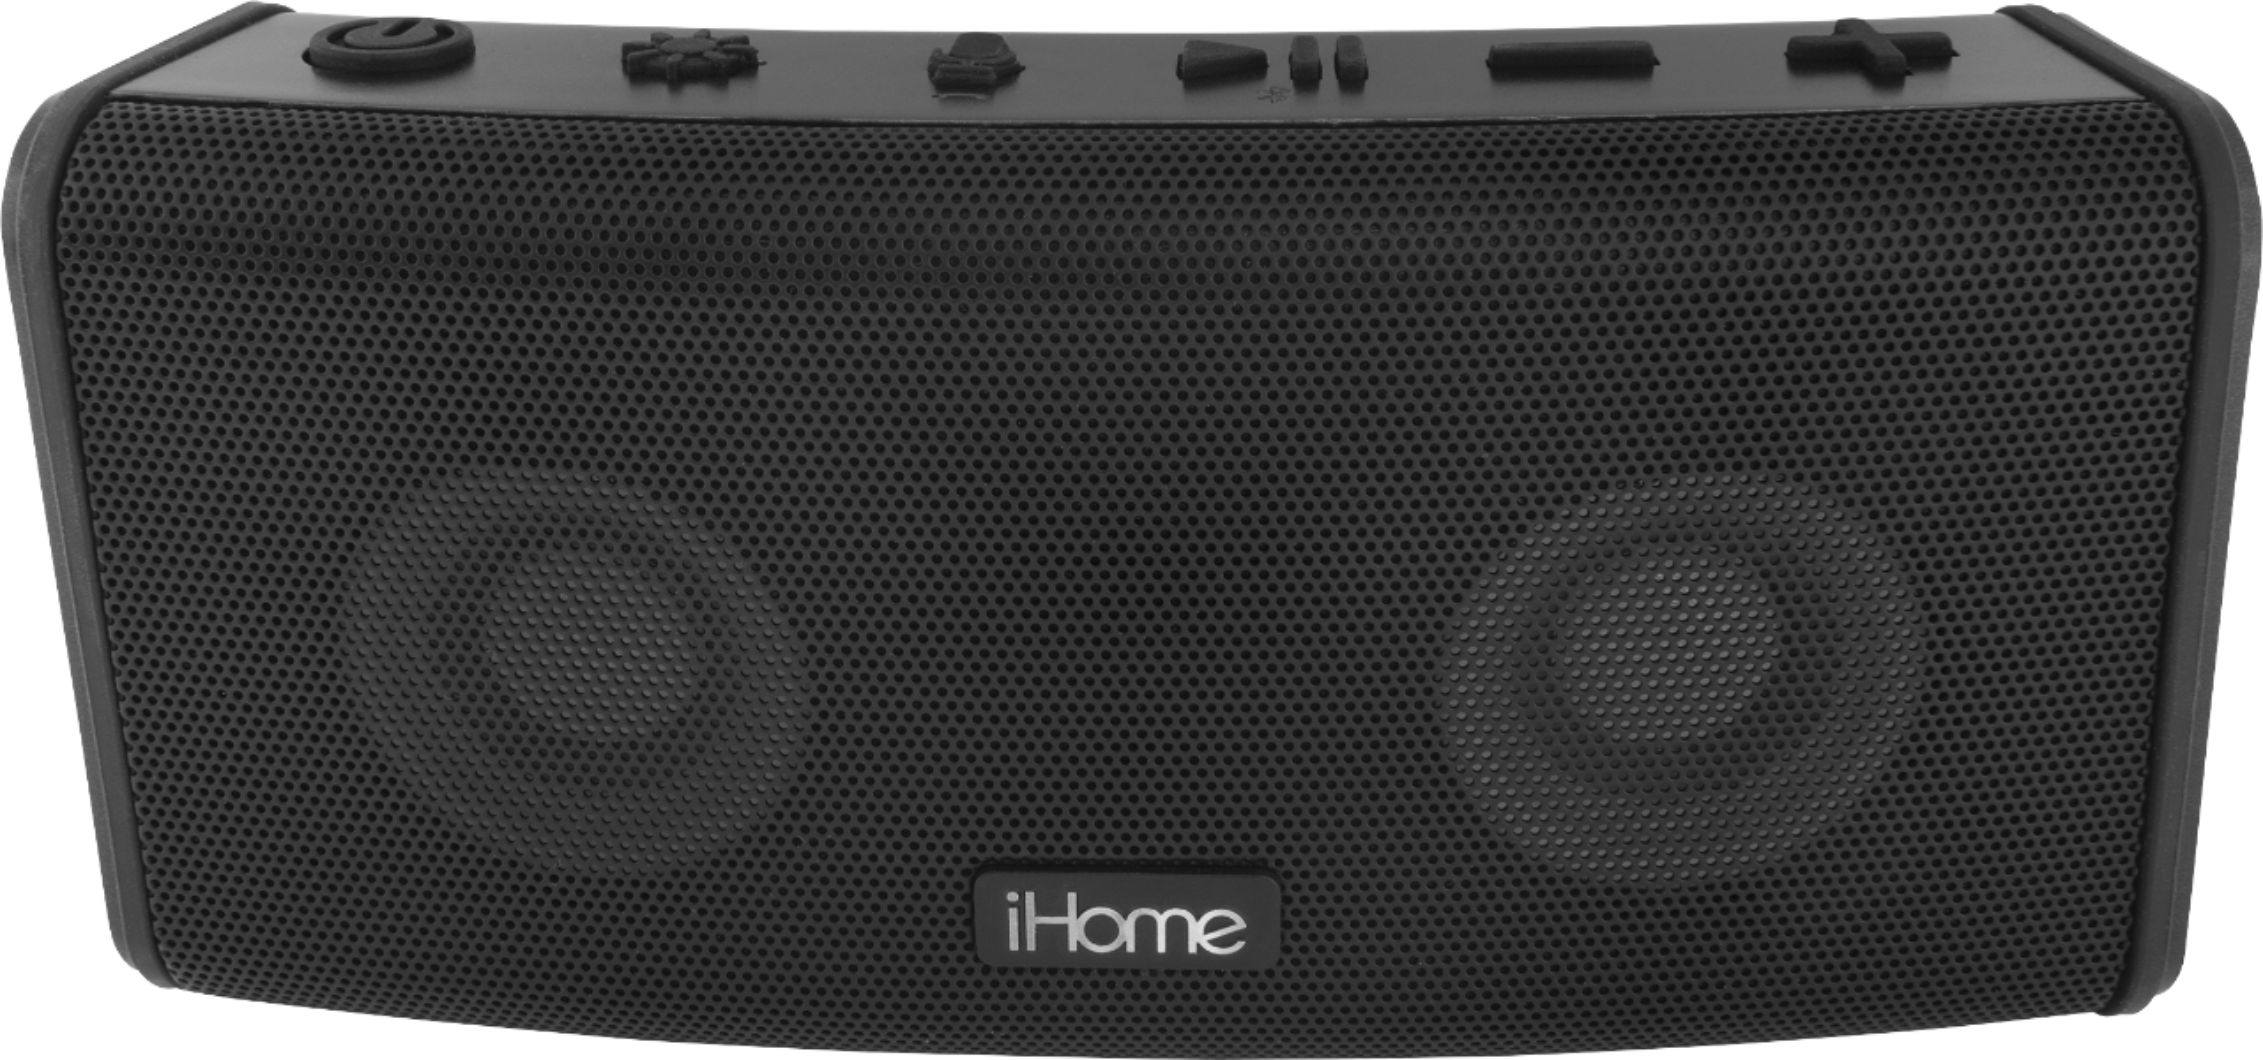 Bluetooth Box Ihome Ibt588 Portable Bluetooth Speaker With Siri Voice Assistant Black